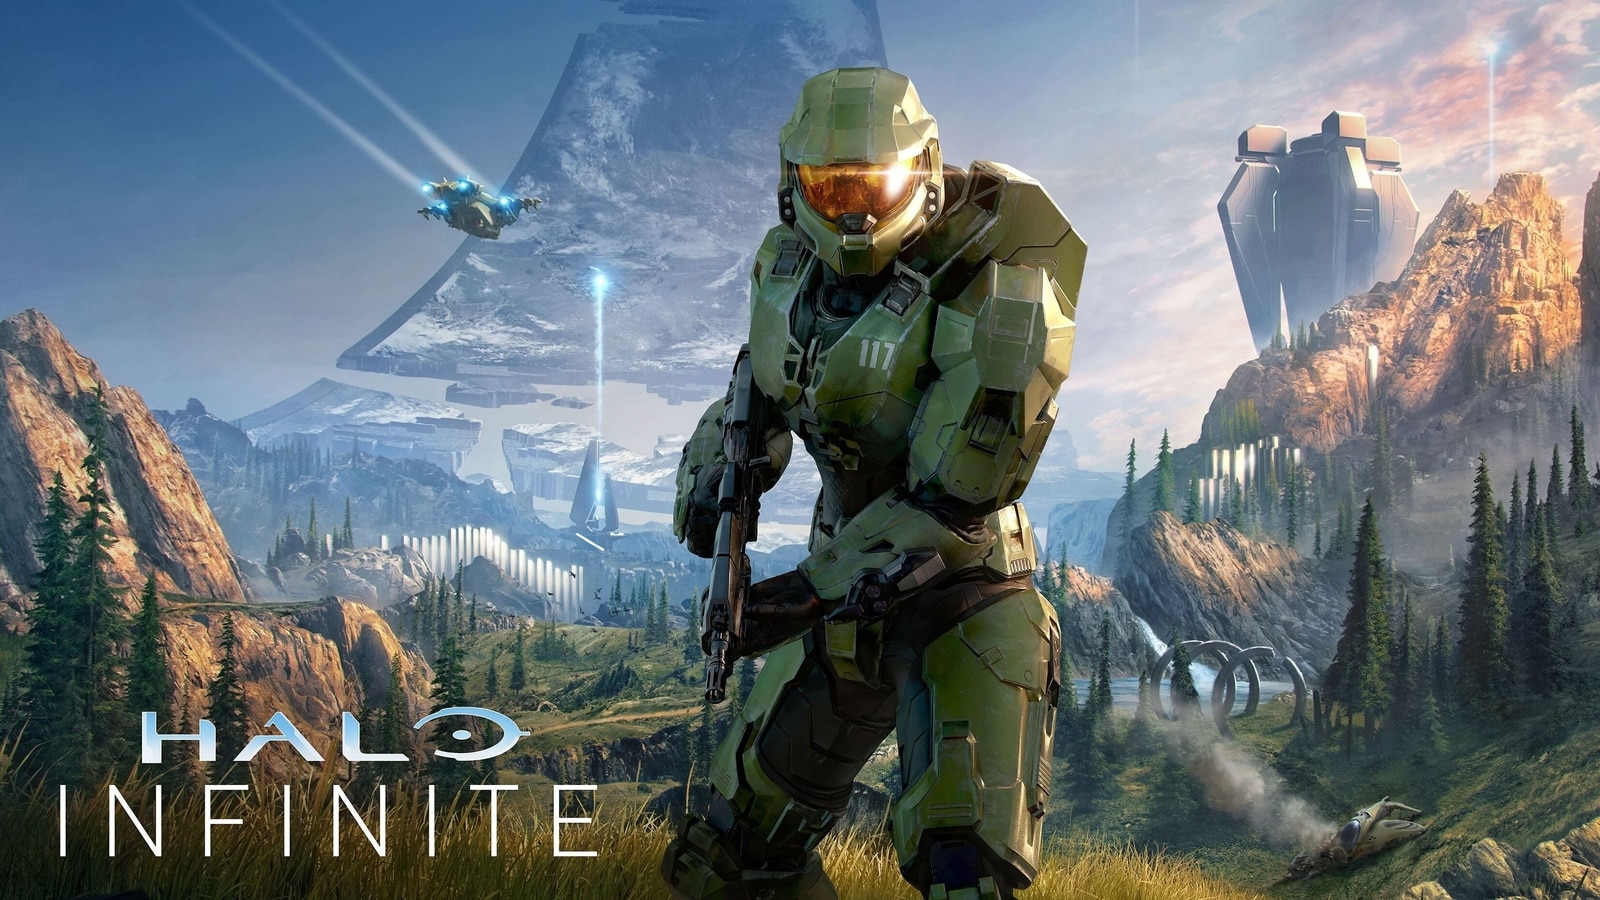 E3 2021: Microsoft promises Halo Infinite after the holiday season is delayed